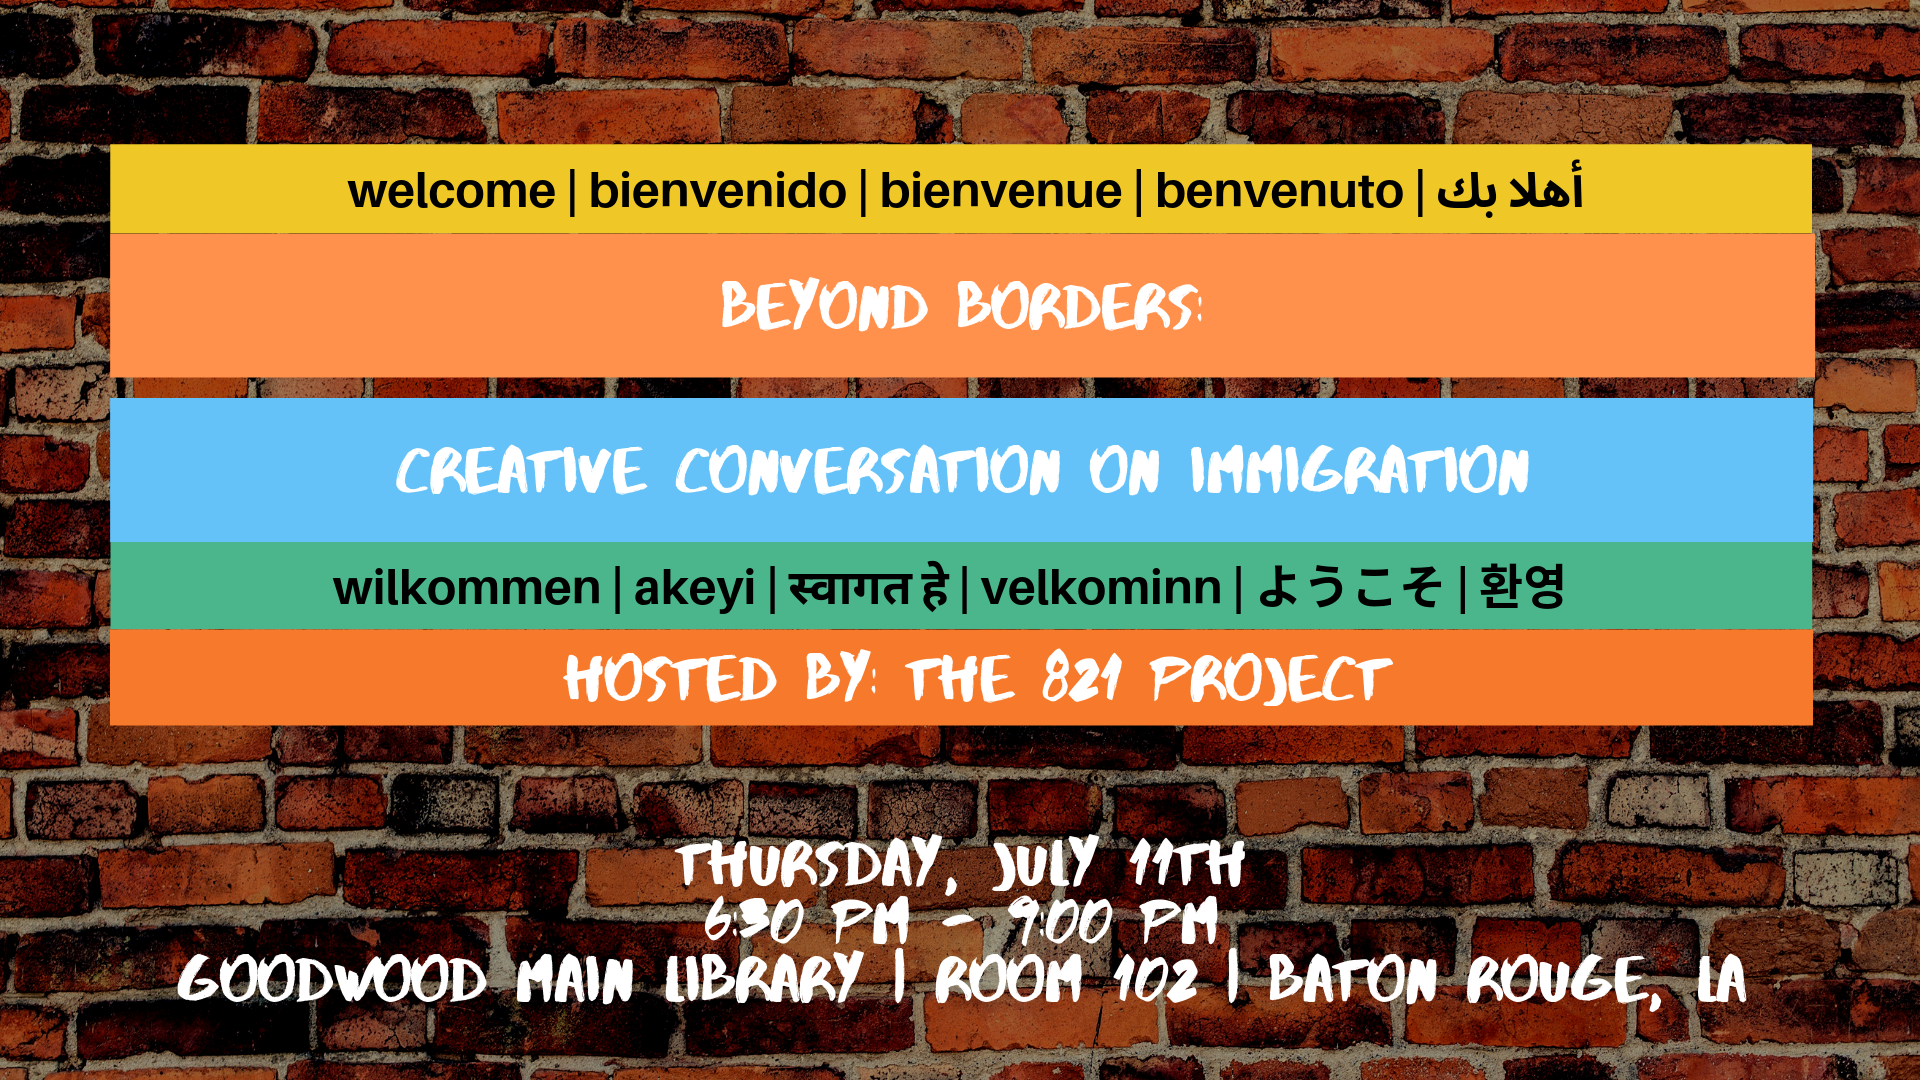 Beyond Borders: Creative Conversation On Immigration